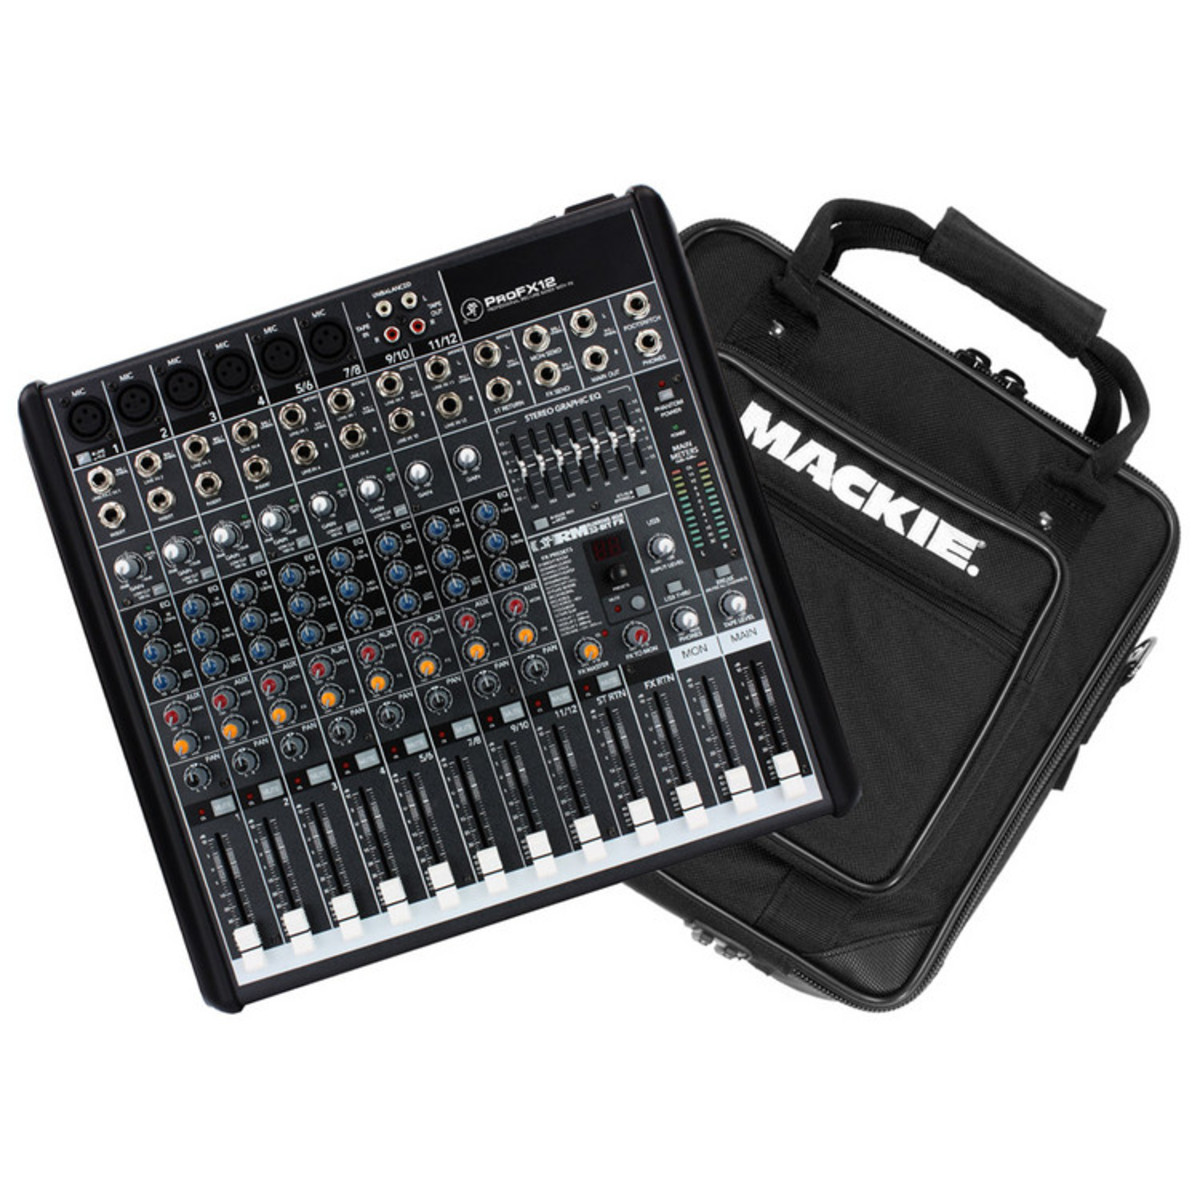 Mackie Profx12 Channel Mixer With Fx With Mackie Padded